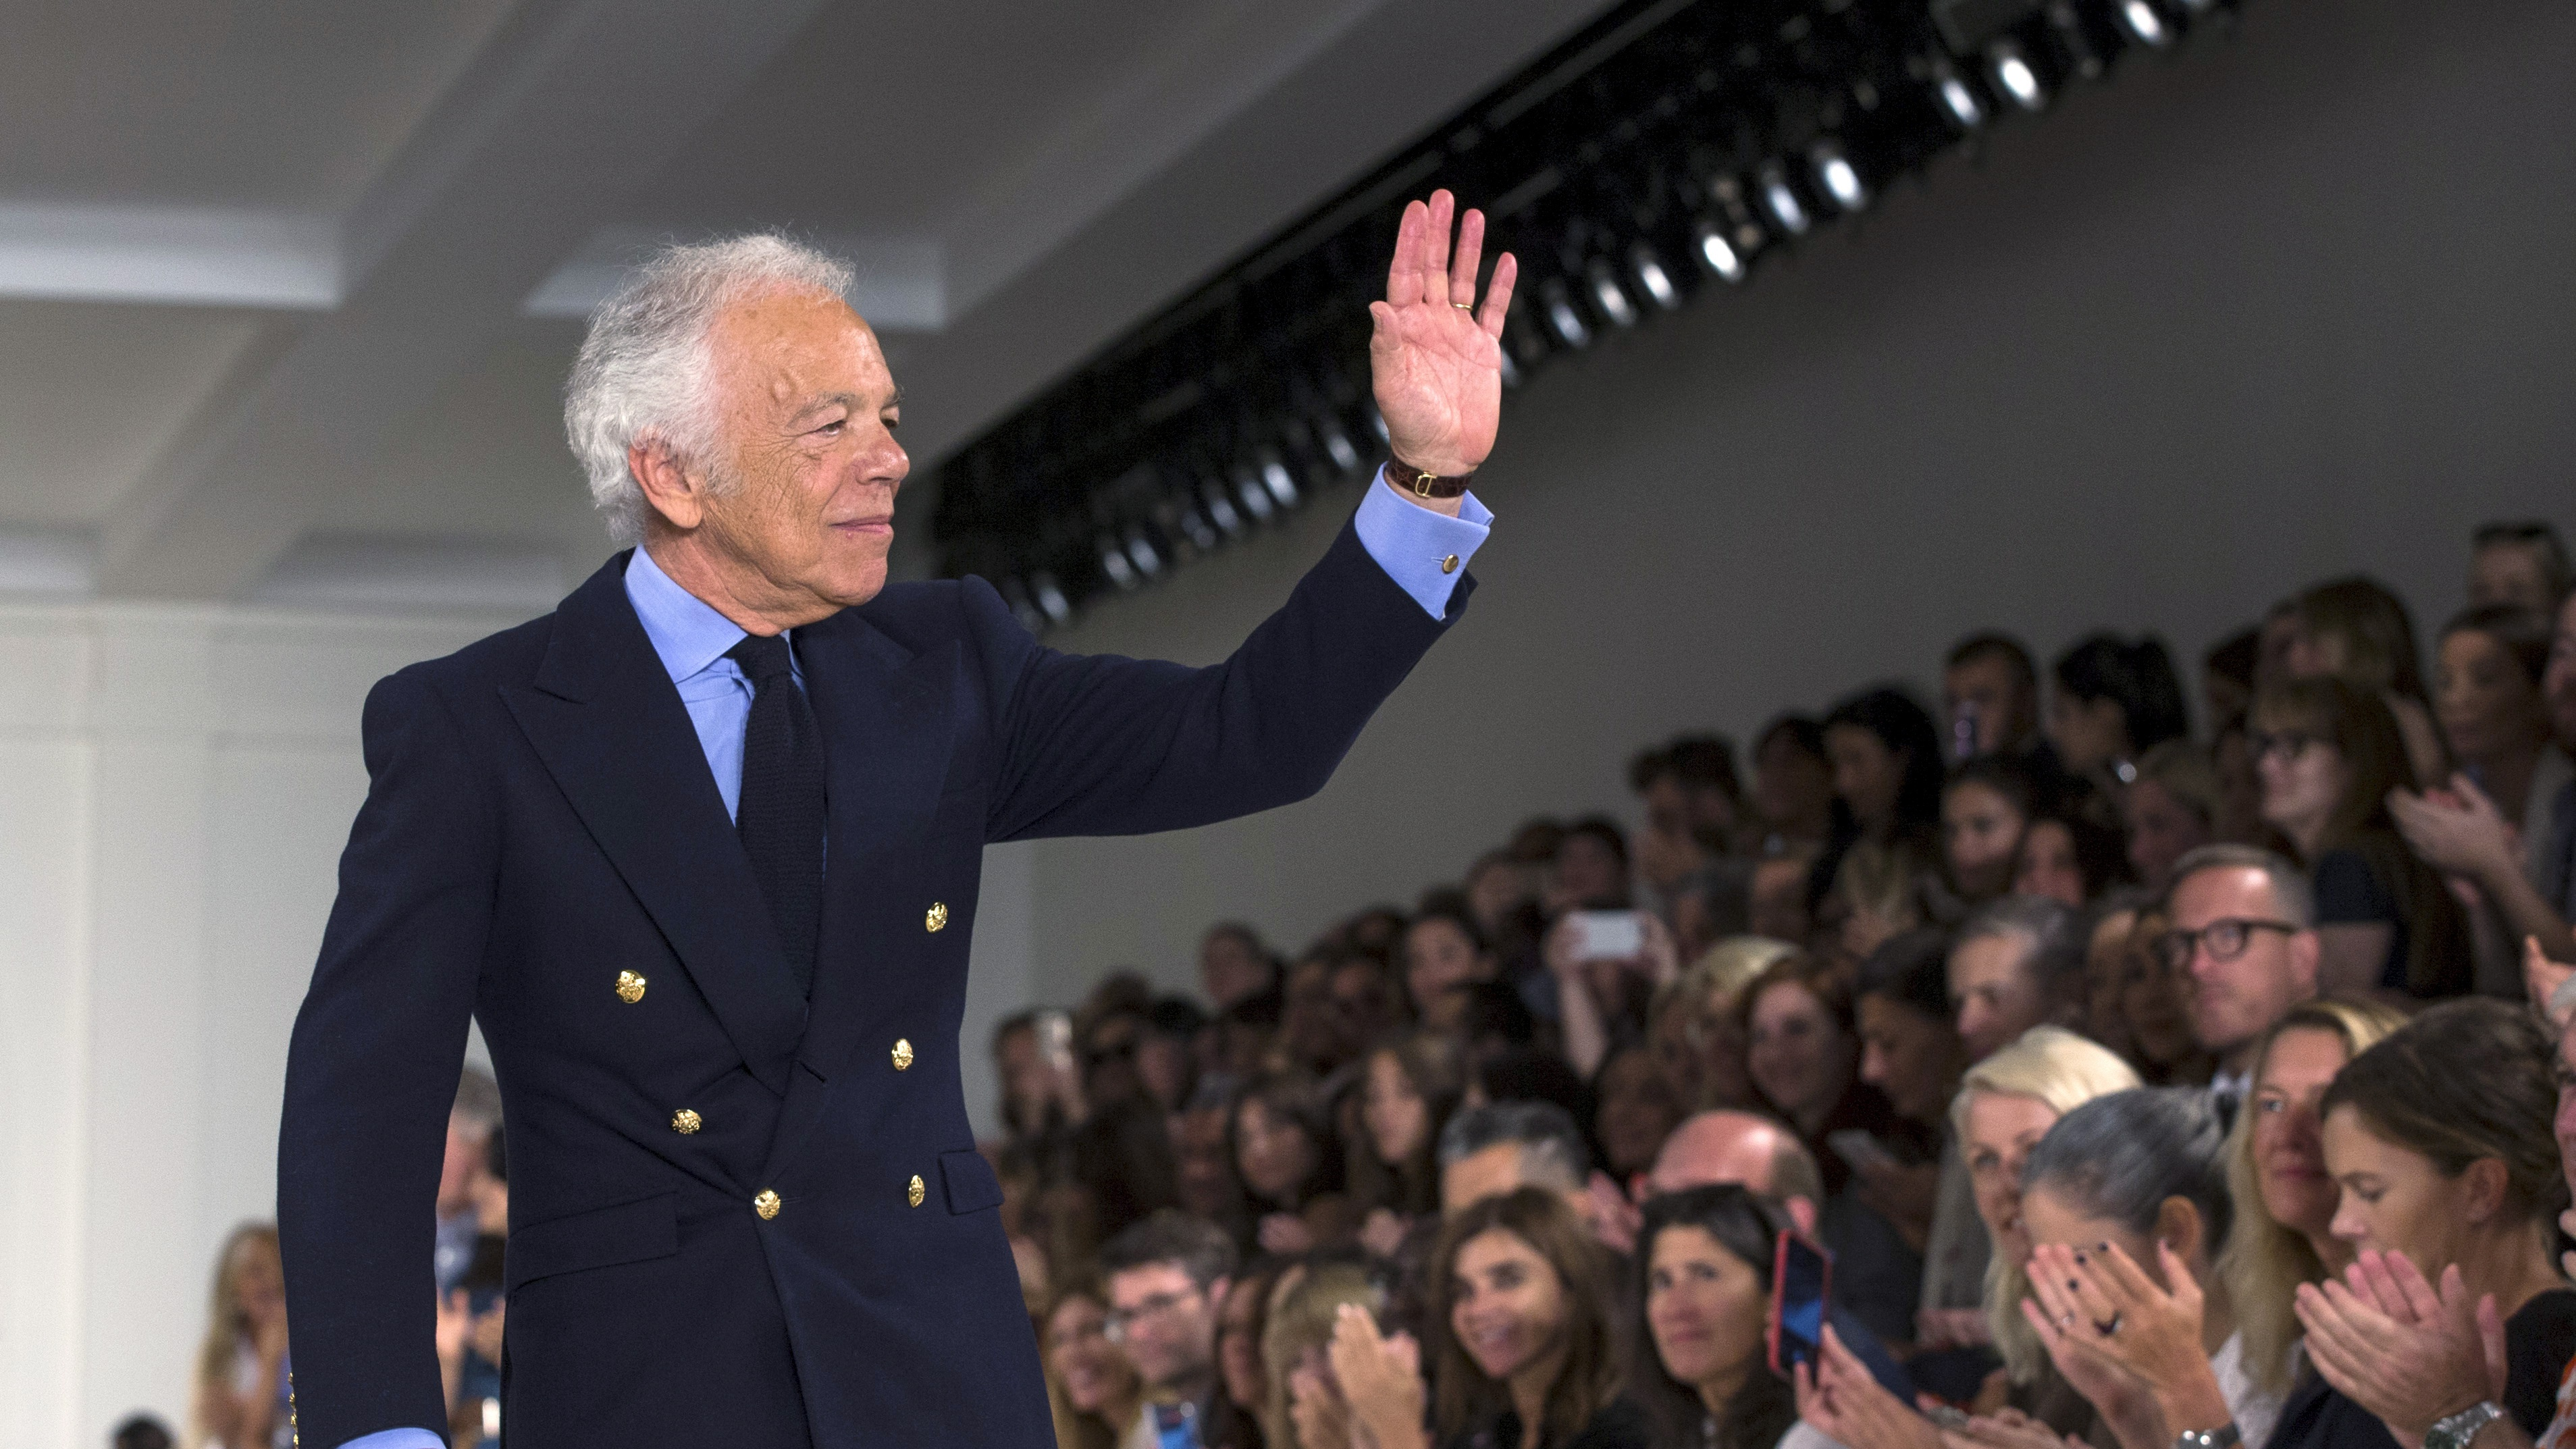 Designer Ralph Lauren greets the crowd after presenting his Spring/Summer 2016 collection during New York Fashion Week in New York, September 17, 2015.